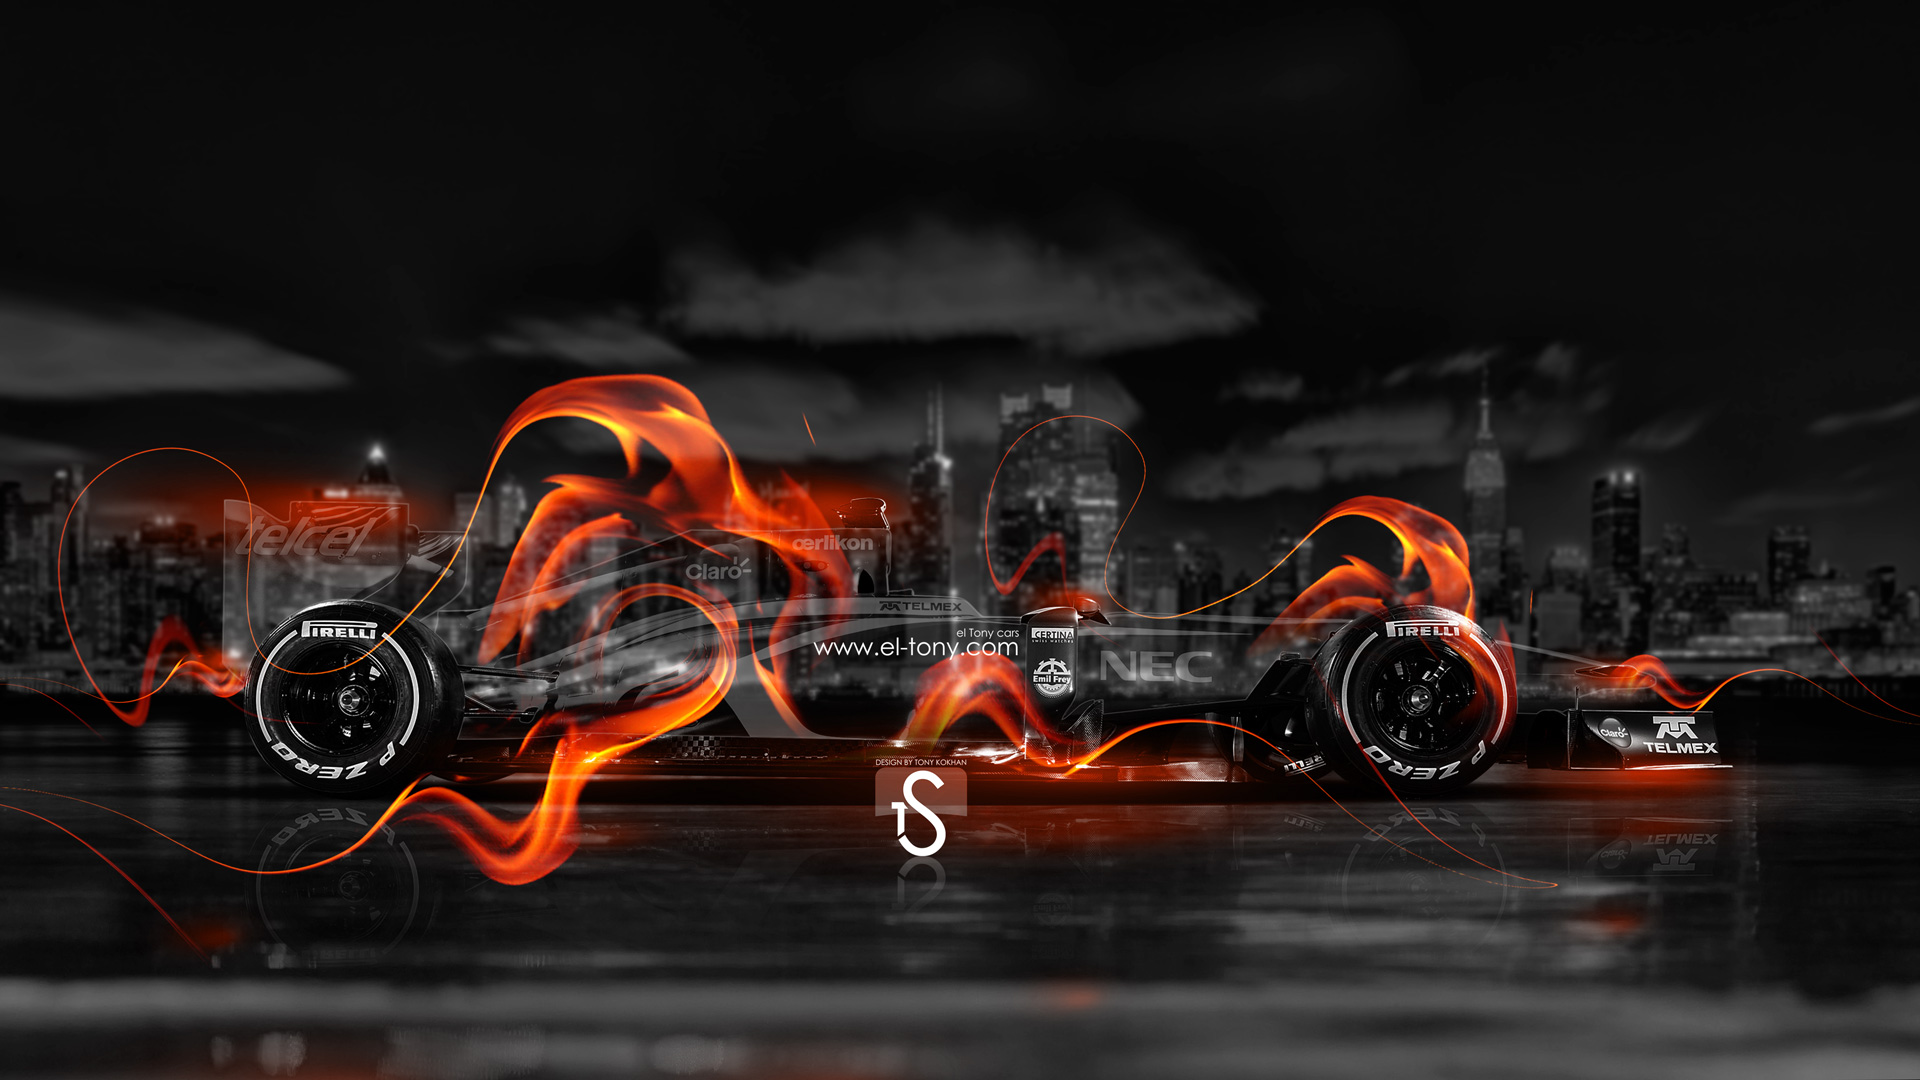 F1 Fire Crystal City Car 2014 HD Wallpapers design by Tony Kokhan [www 1920x1080